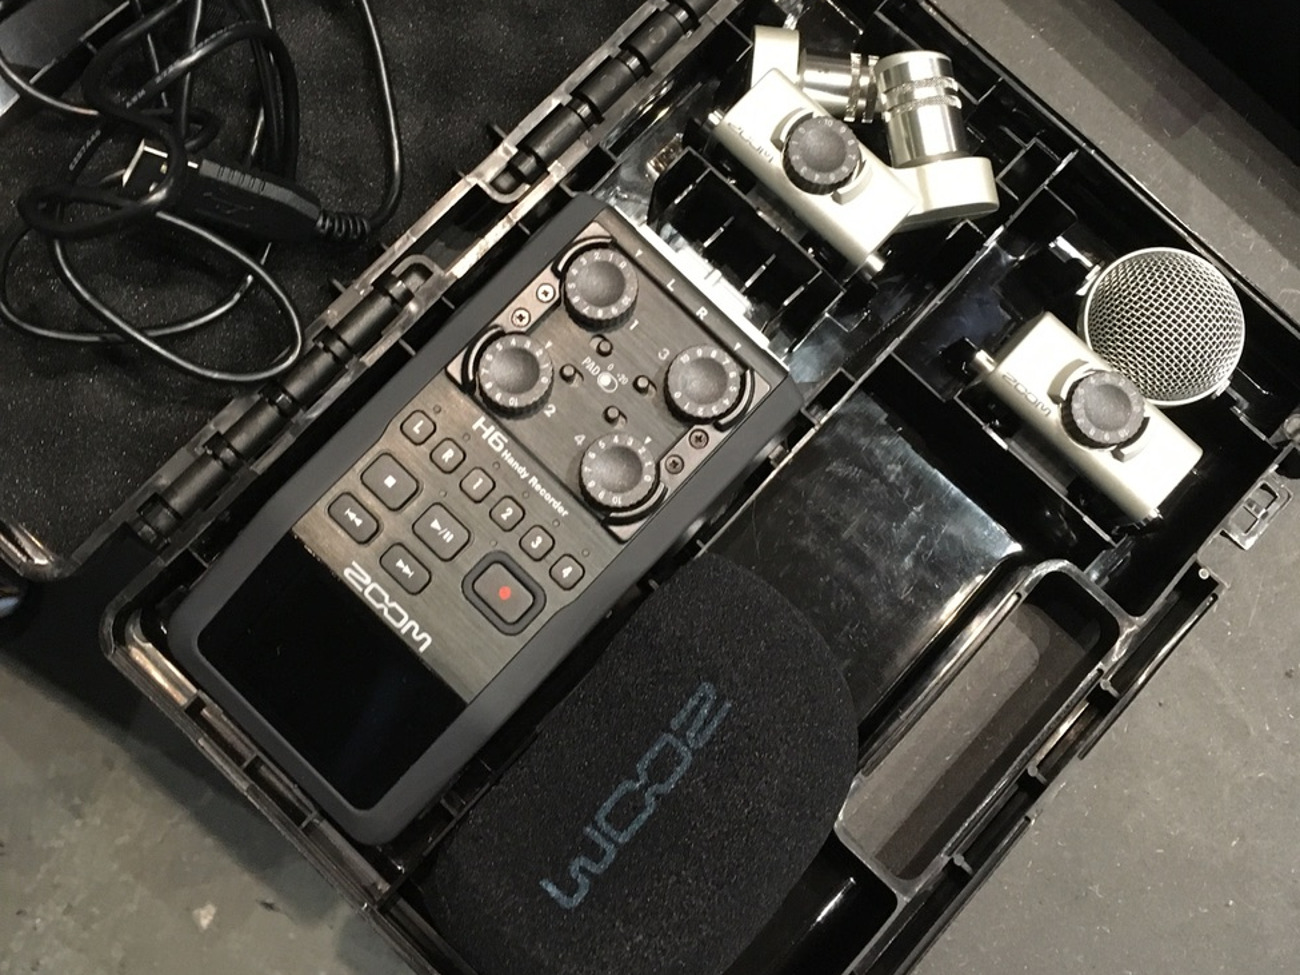 Zoom H6 Recorder Zoom H6 Recorder